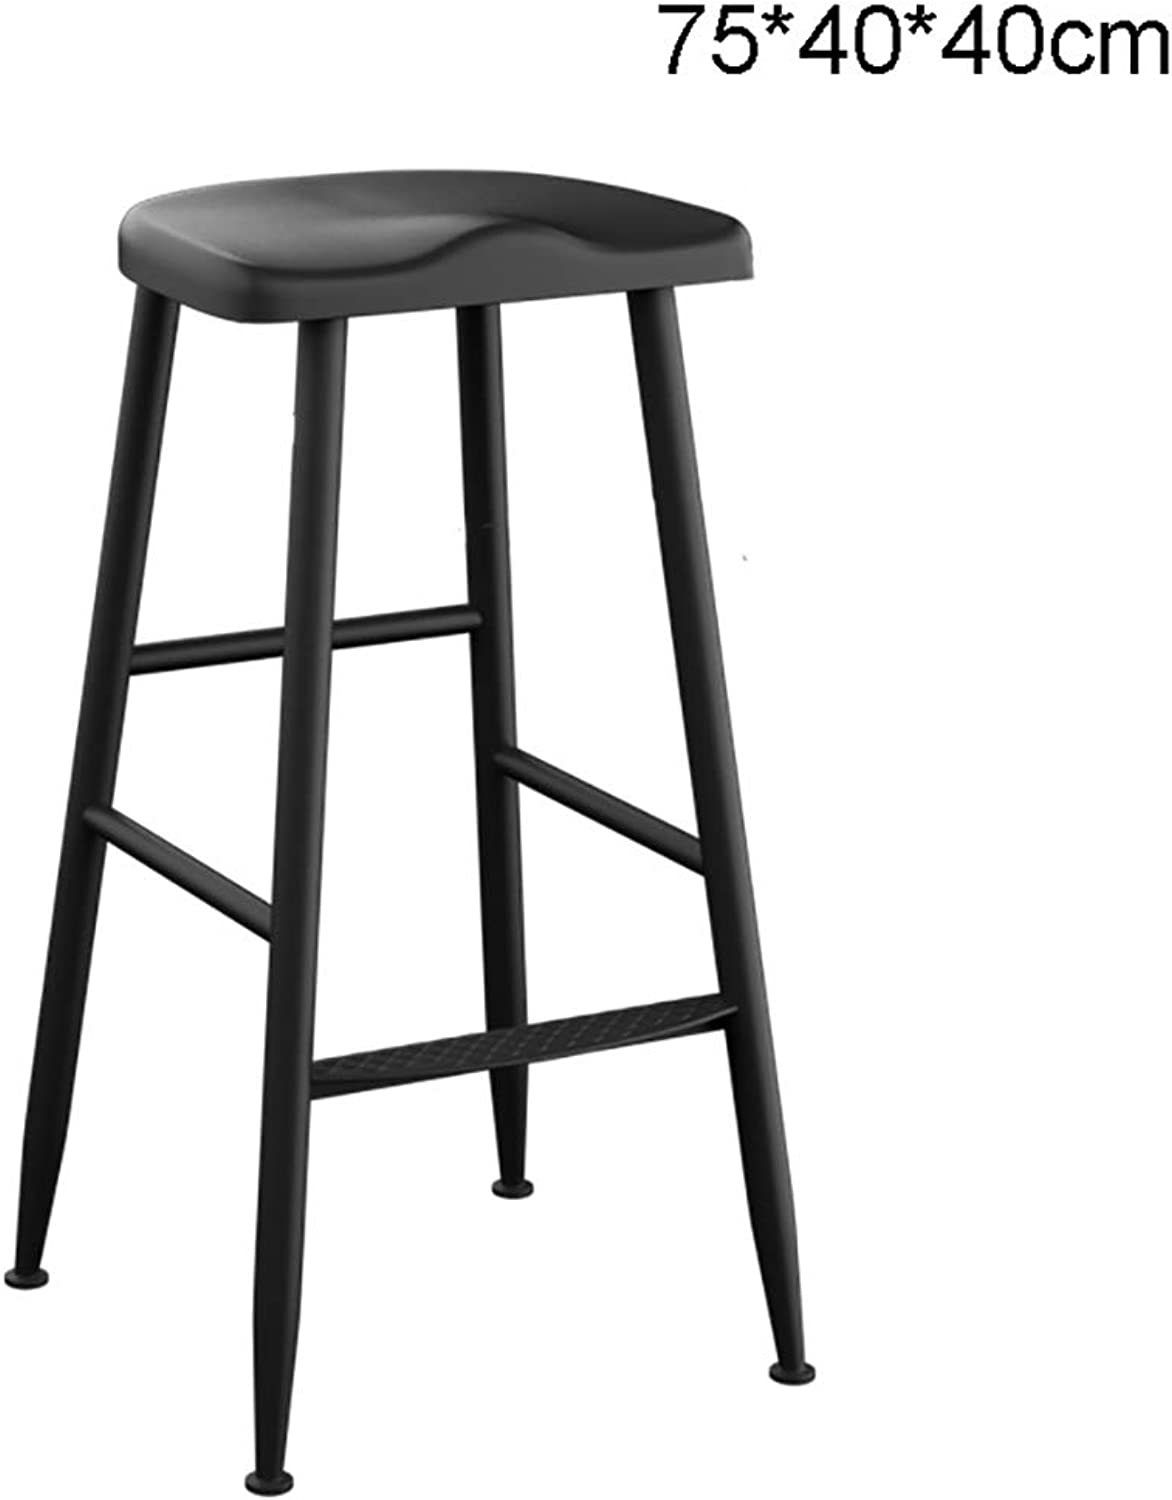 Simple Style Bar Stool Chair Iron Frame PU Cushion (Size   75  40  40cm)